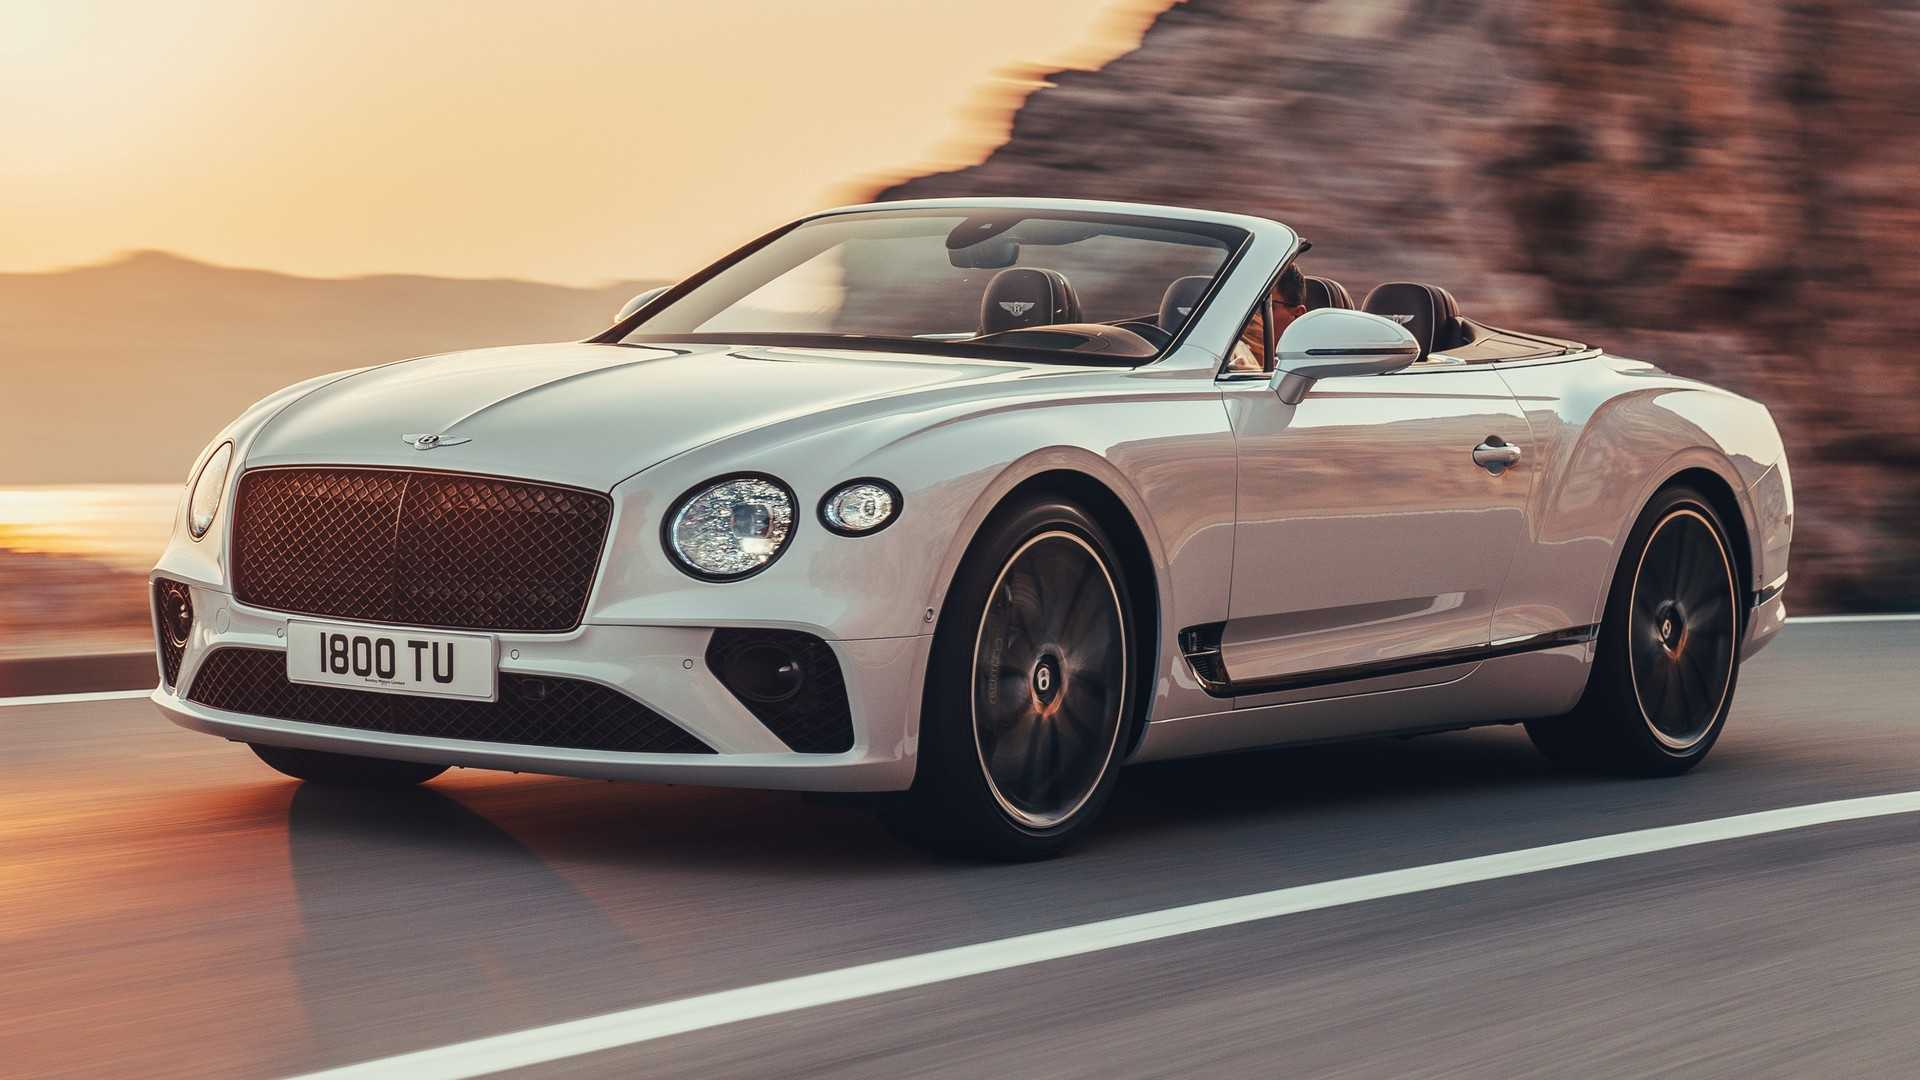 17 Gallery of 2019 Bentley Continental Gtc Specs for 2019 Bentley Continental Gtc